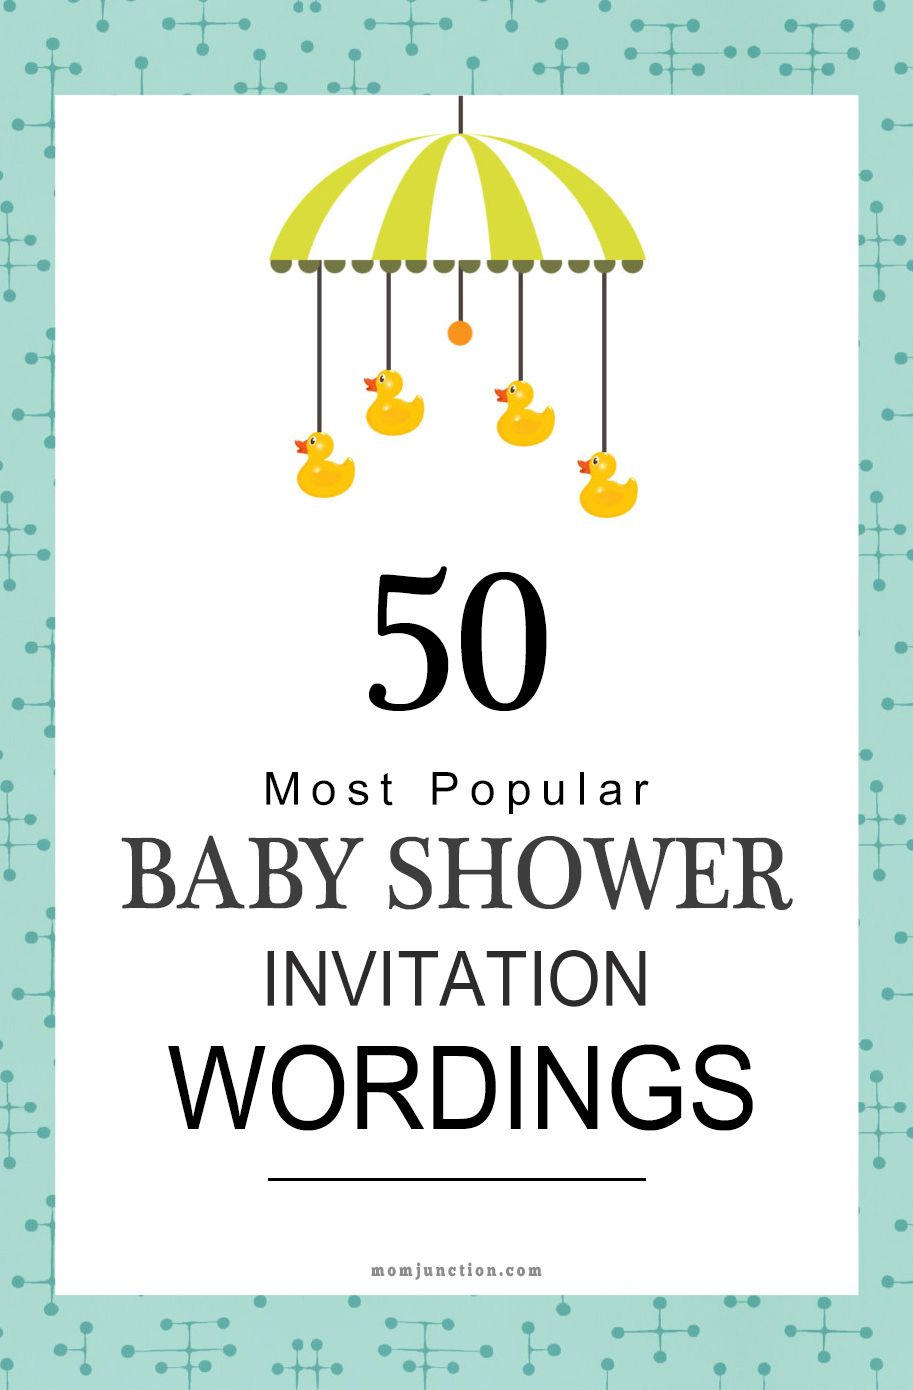 75 most popular baby shower invitation wordings food family 50 most popular baby shower invitation wordings momjunction will help you find the right words to create a memorable and fun invitation to welcome the baby filmwisefo